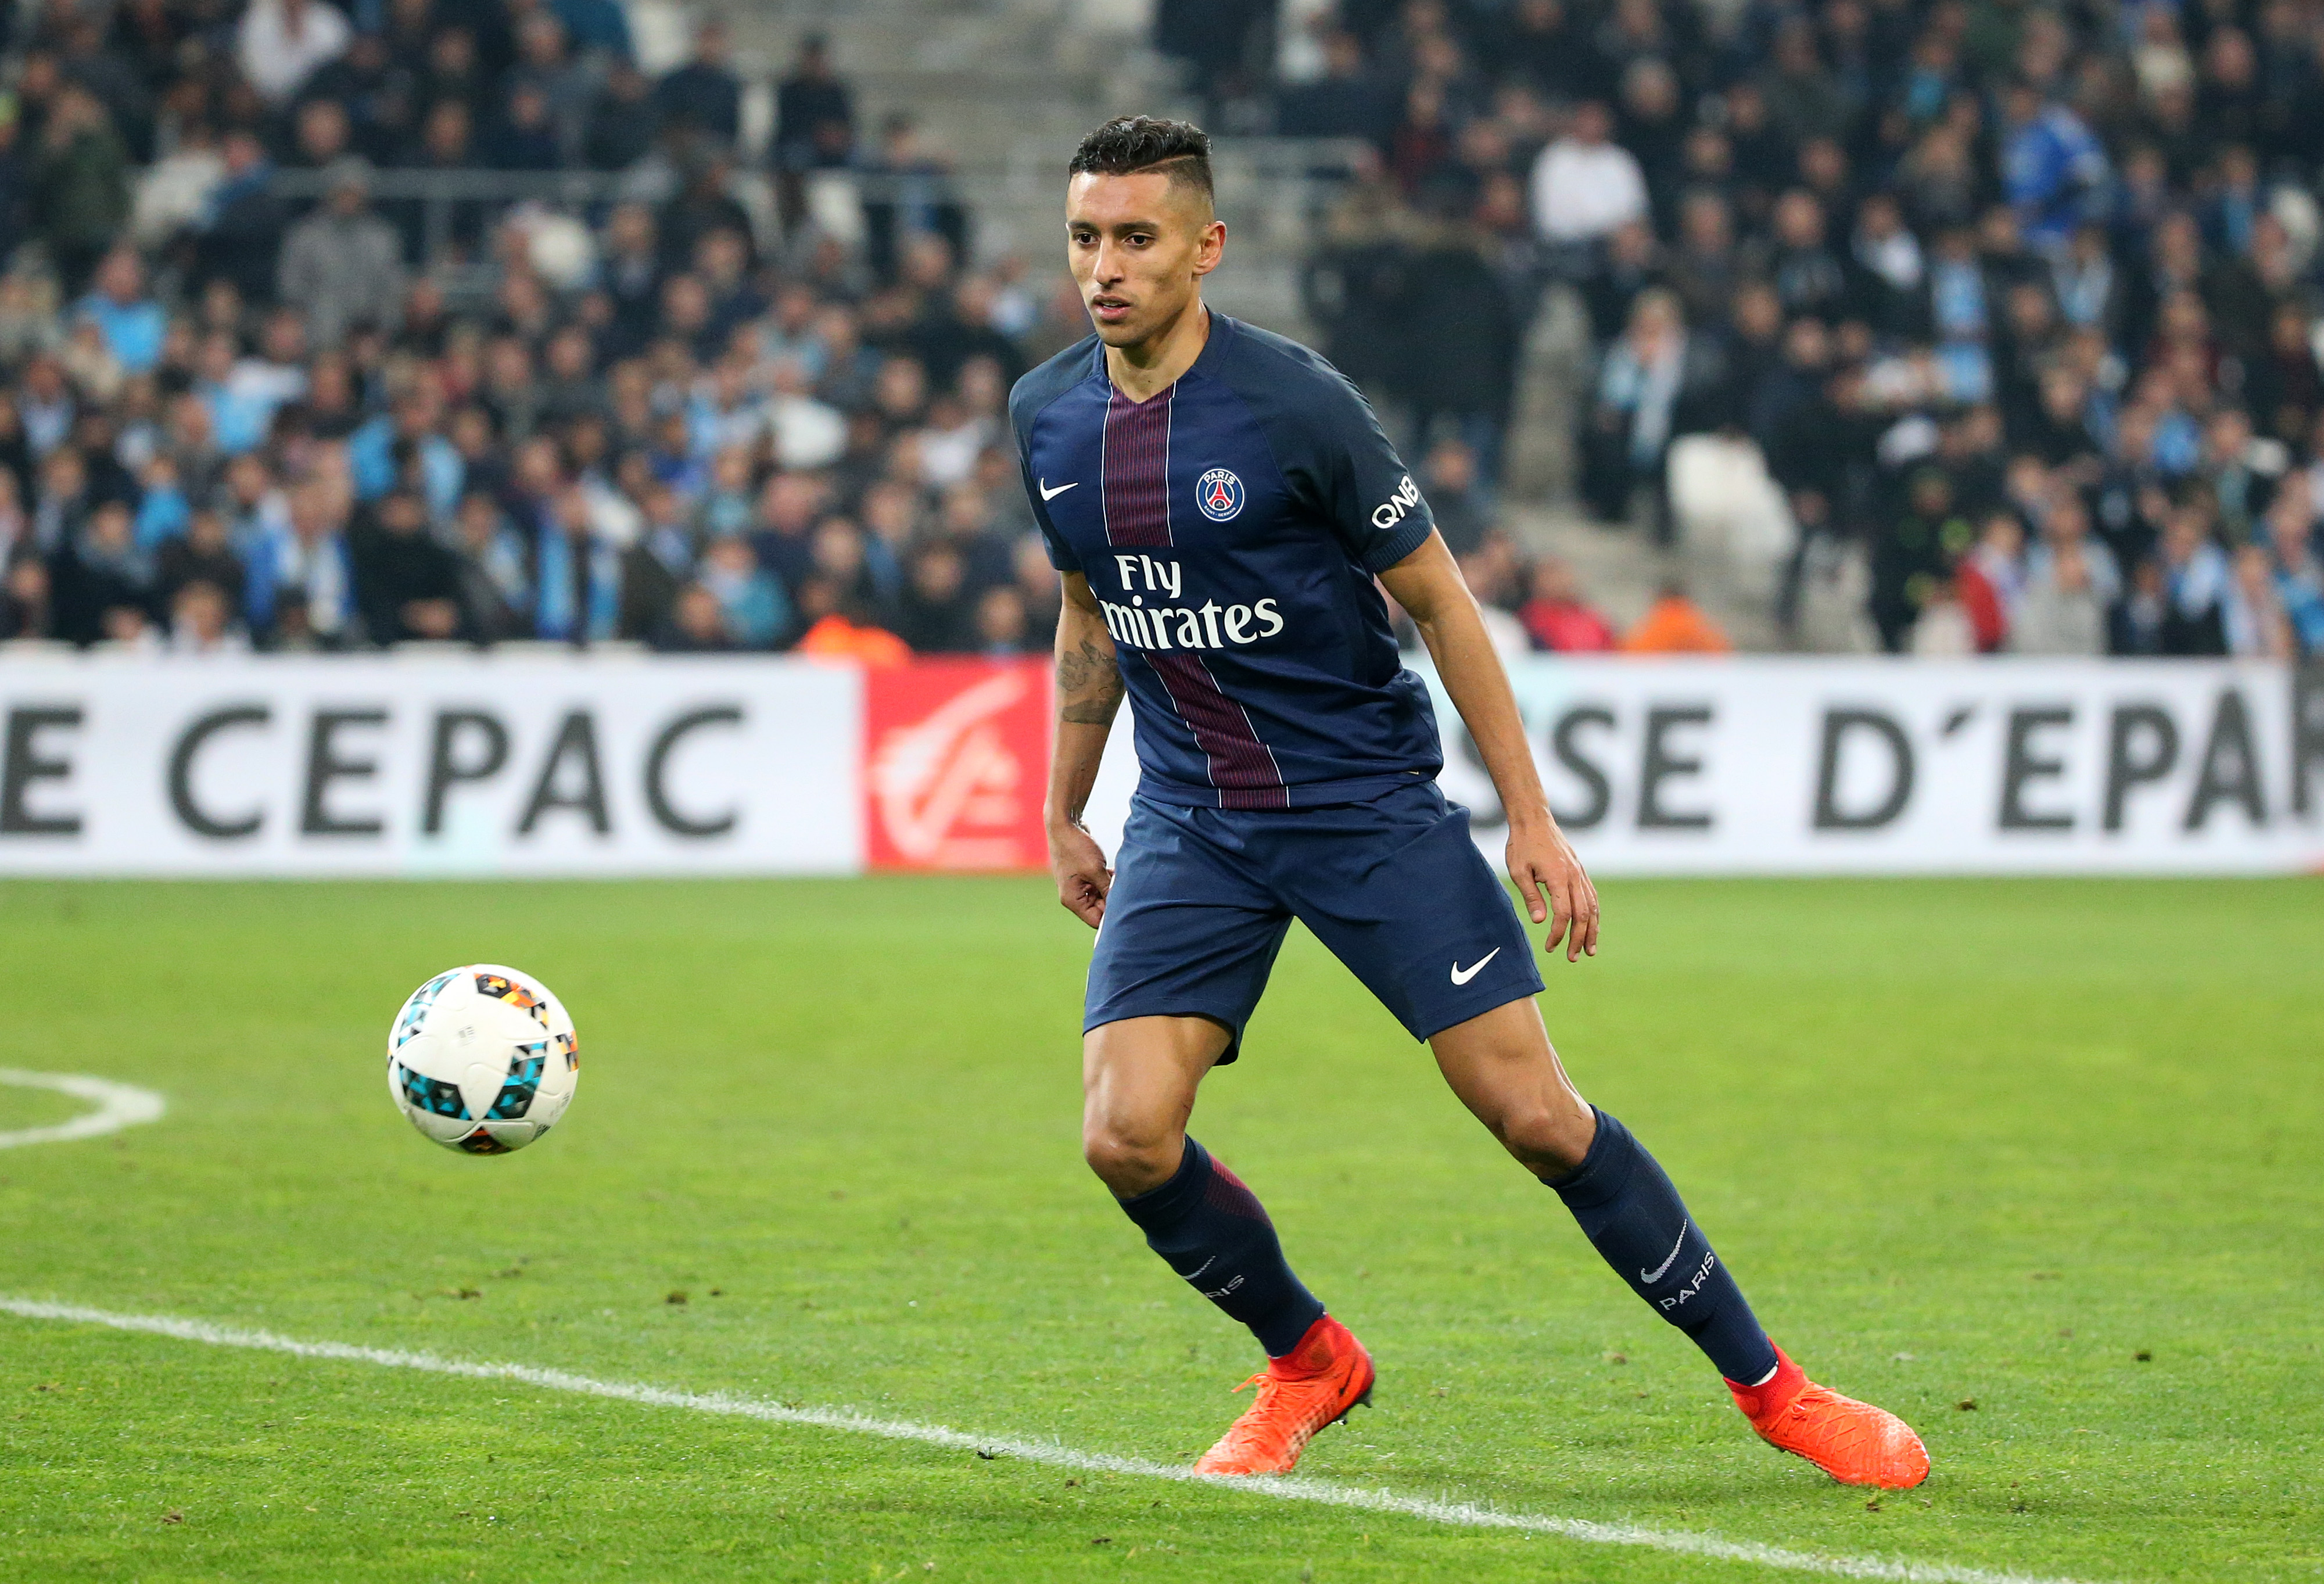 United Showing Interest in PSG s Marquinhos